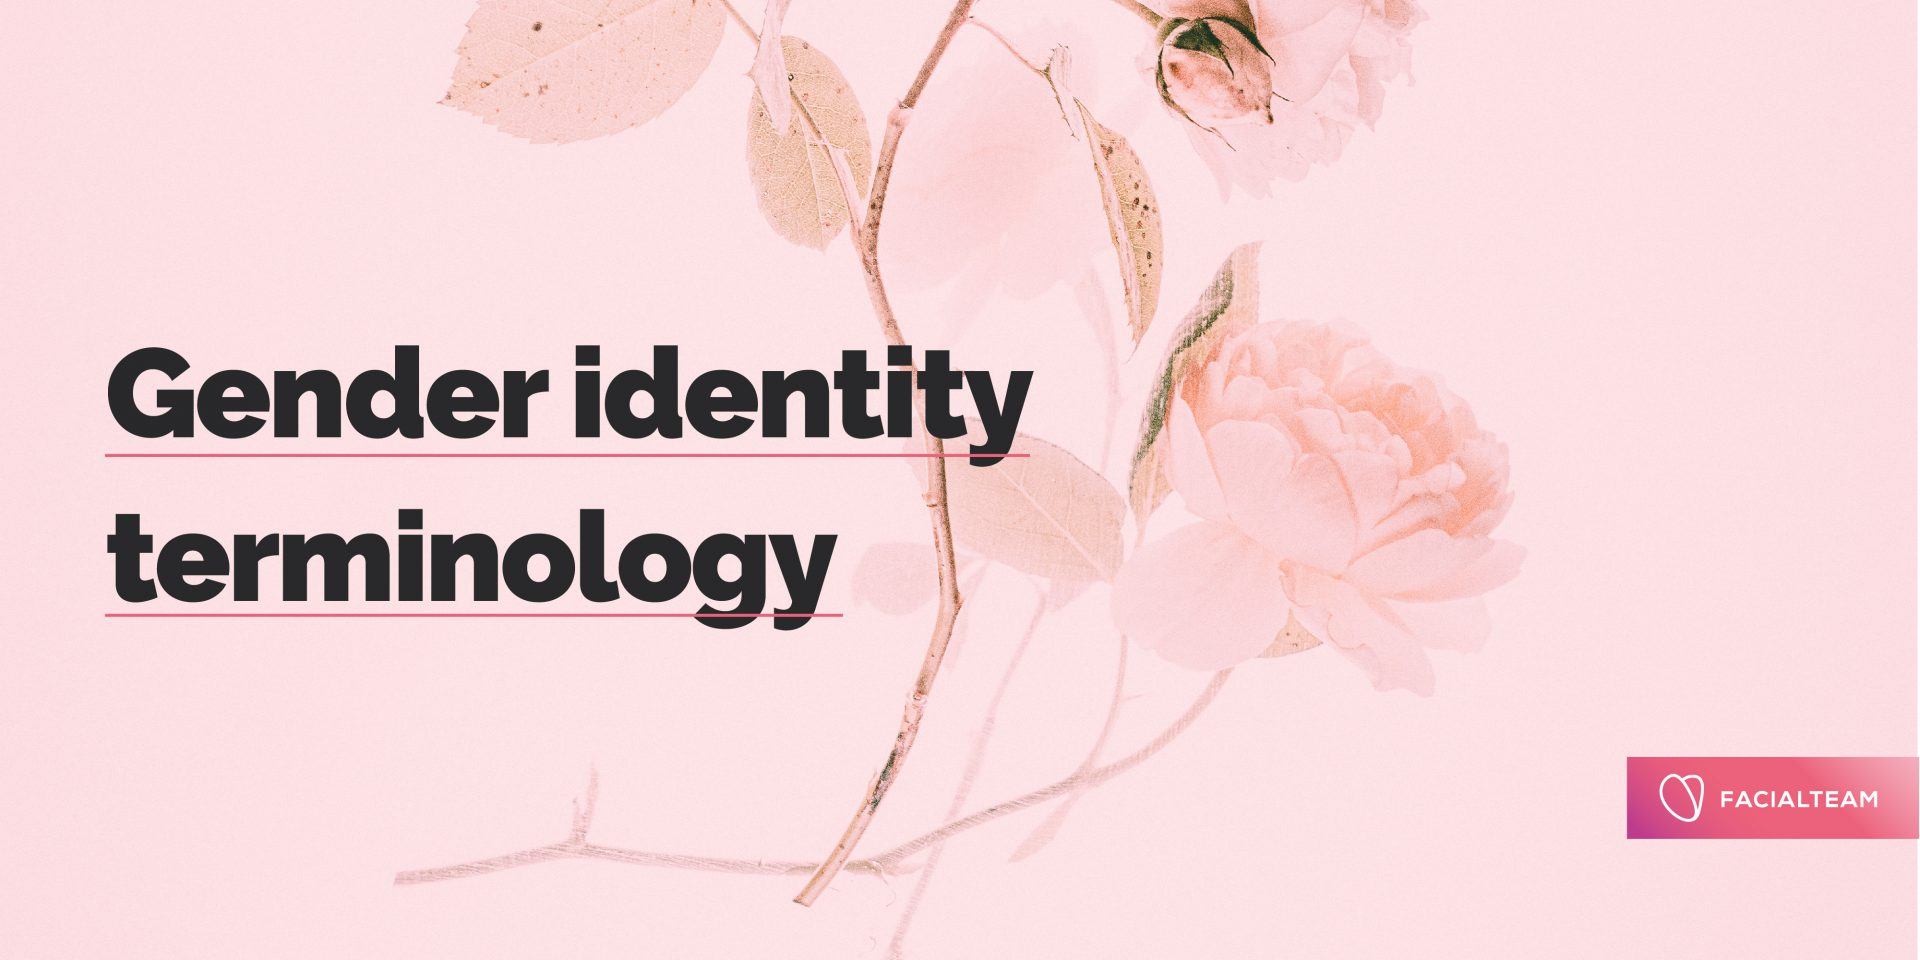 Gender identity terminology: What's your pronoun?